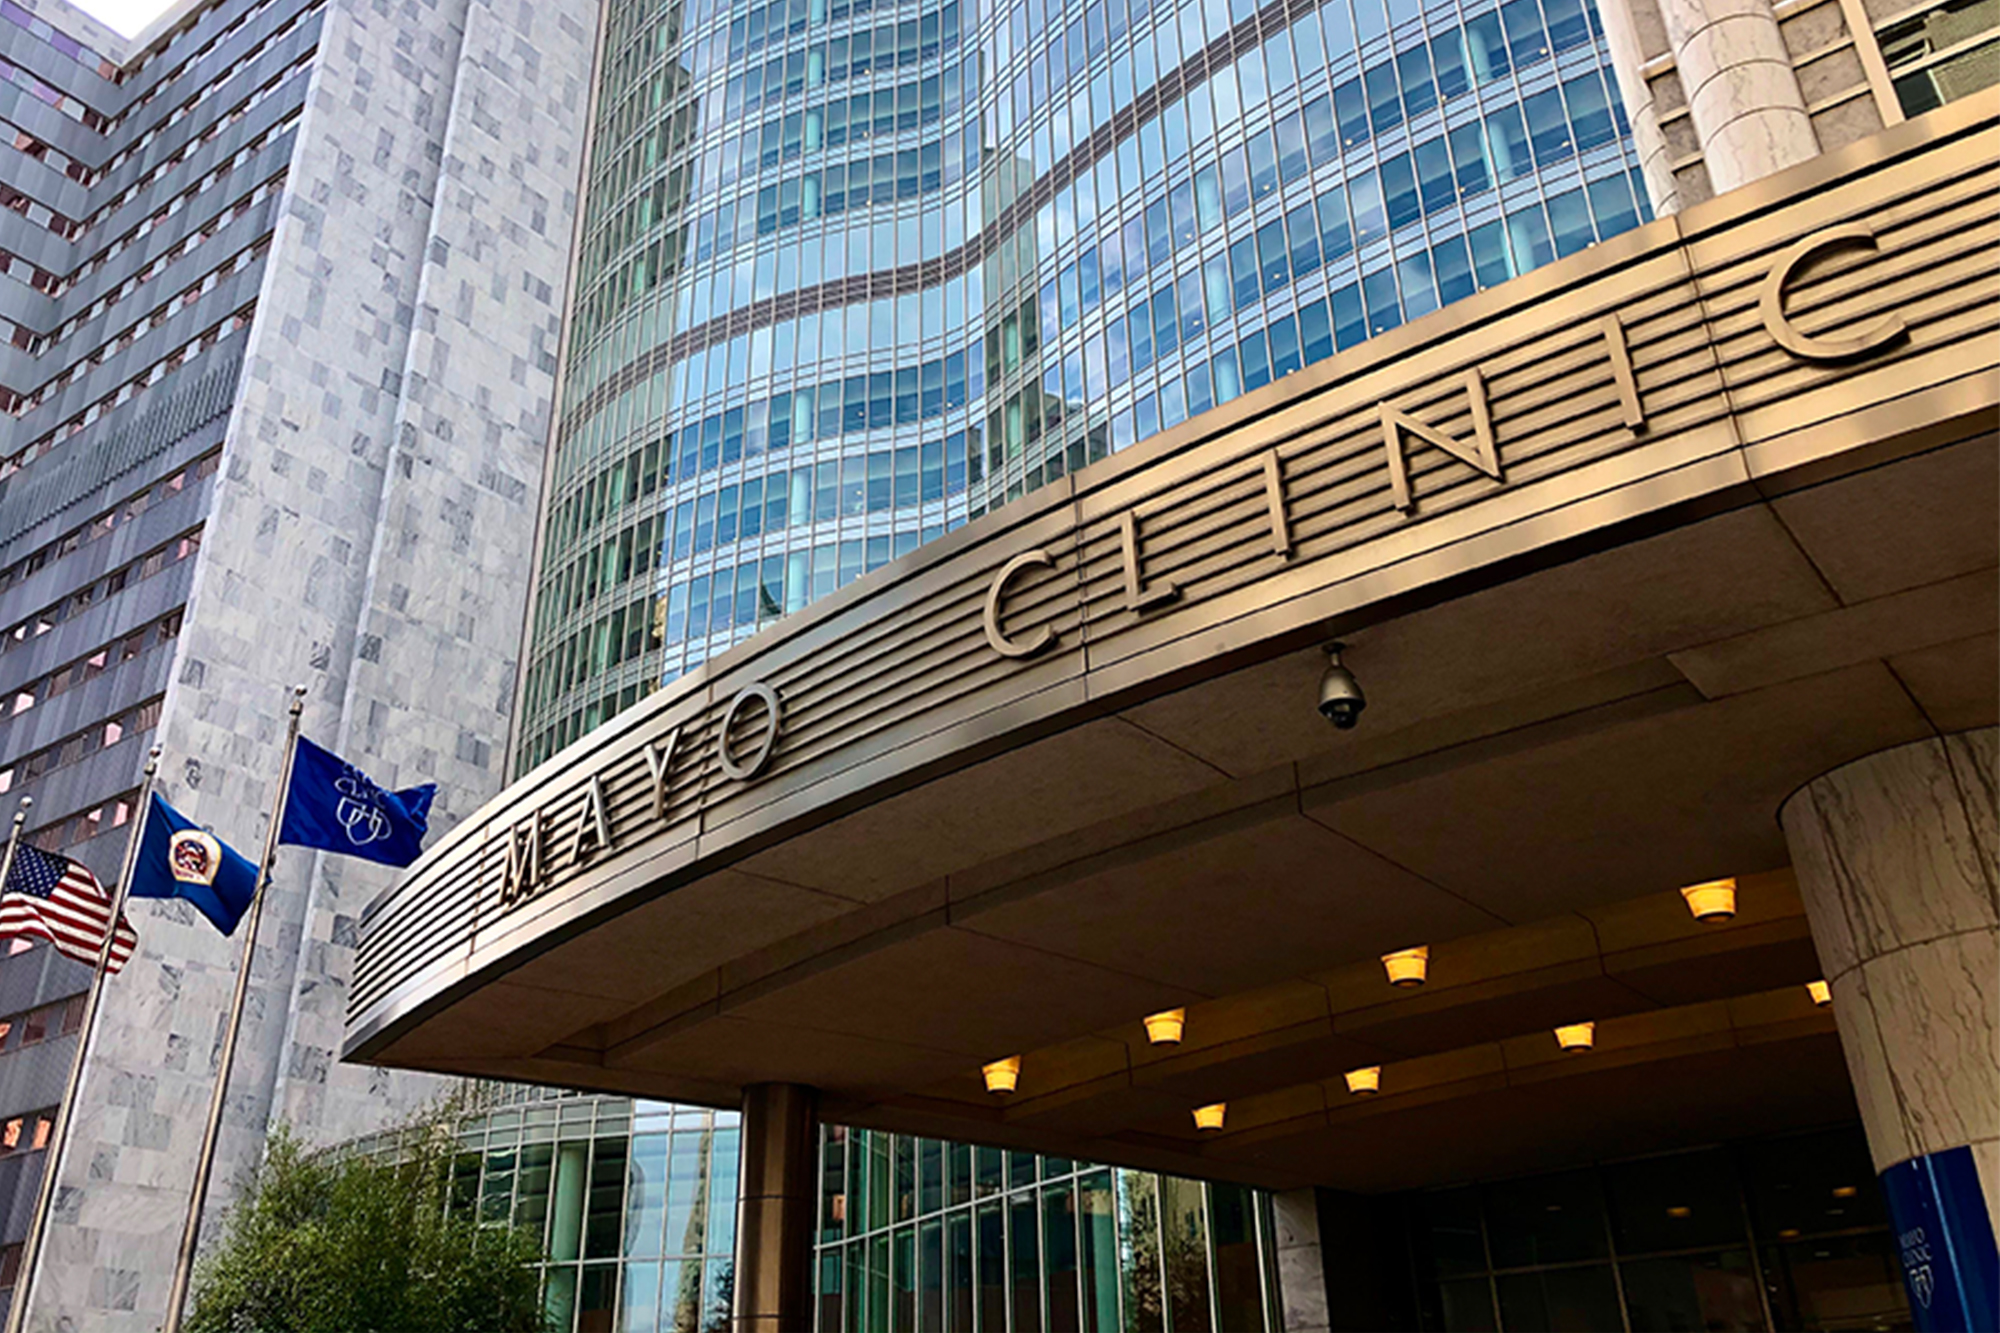 900 Mayo Clinic staffers diagnosed with COVID-19 in last two weeks